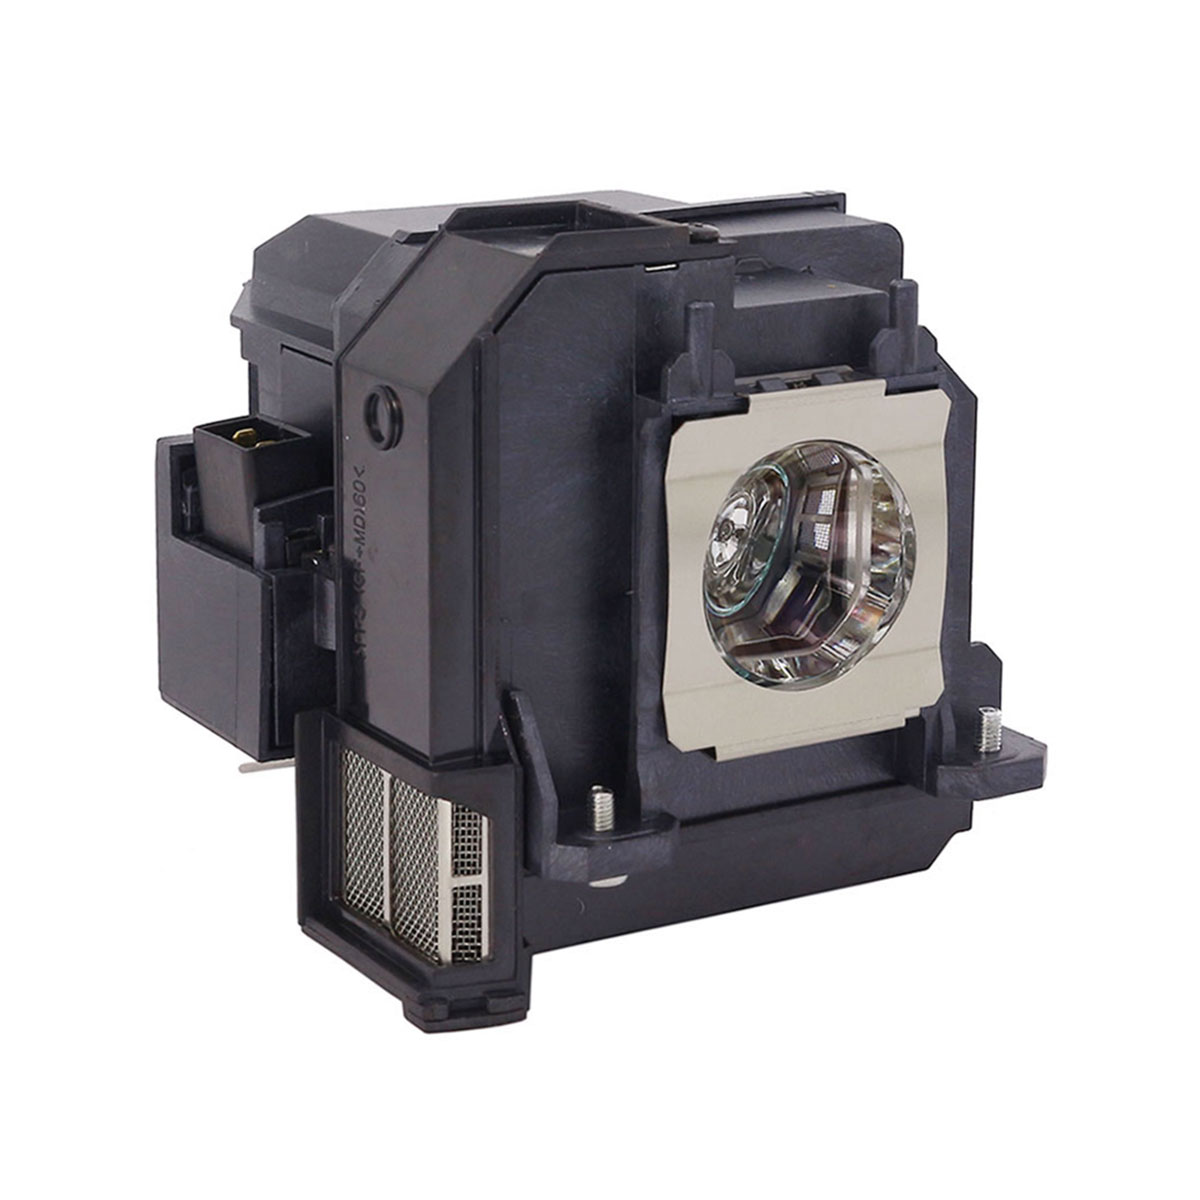 Lutema Platinum for Epson ELPLP91 Projector Lamp with Housing (Original Philips Bulb Inside) - image 1 of 5